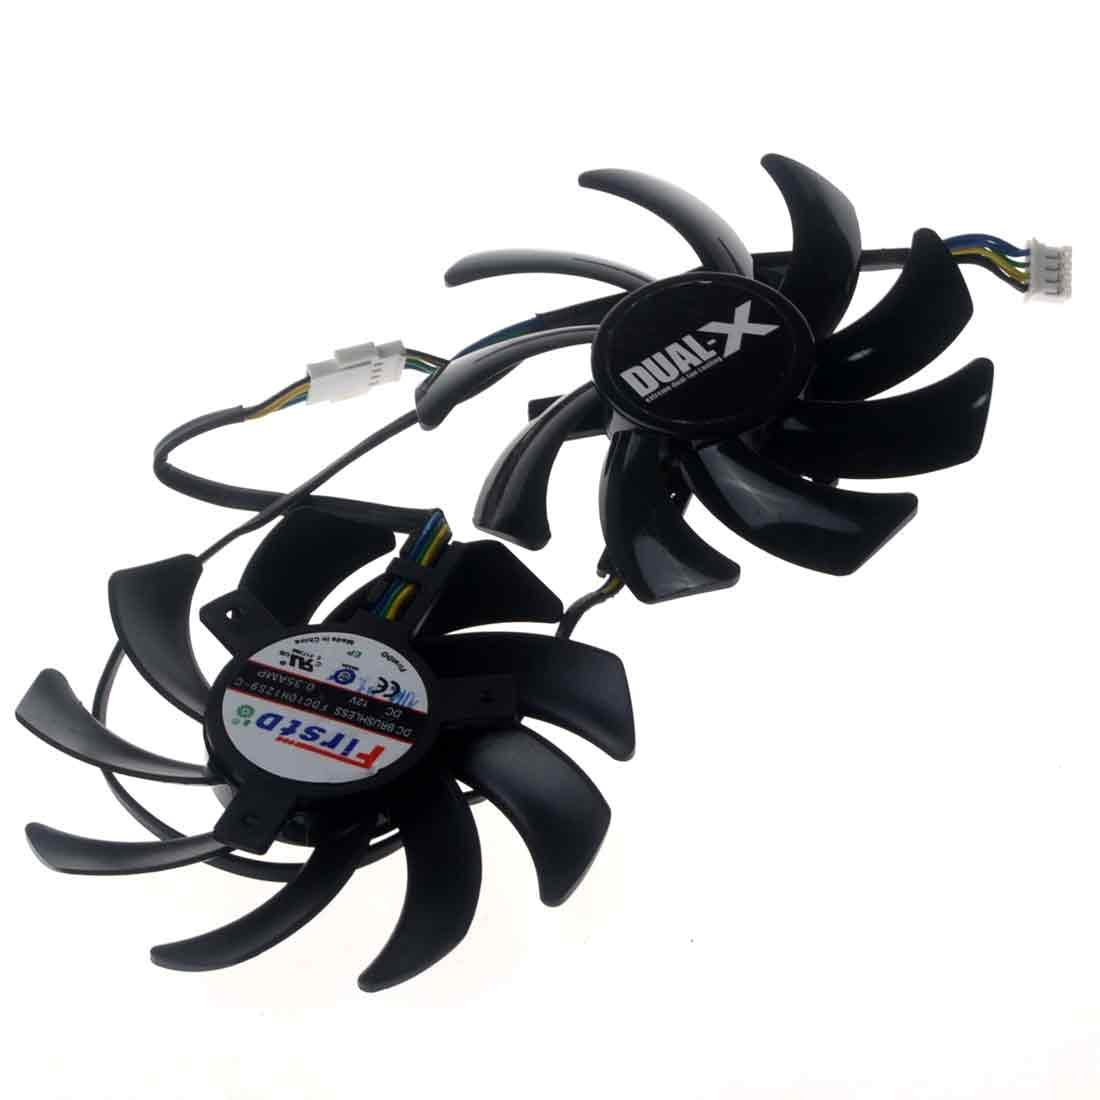 FDC10H12S9-C 85mm DC12V 0.35A 4Pin Replacement Graphics Video Card PC Cooling Dual Fan by Allpartz (Image #5)